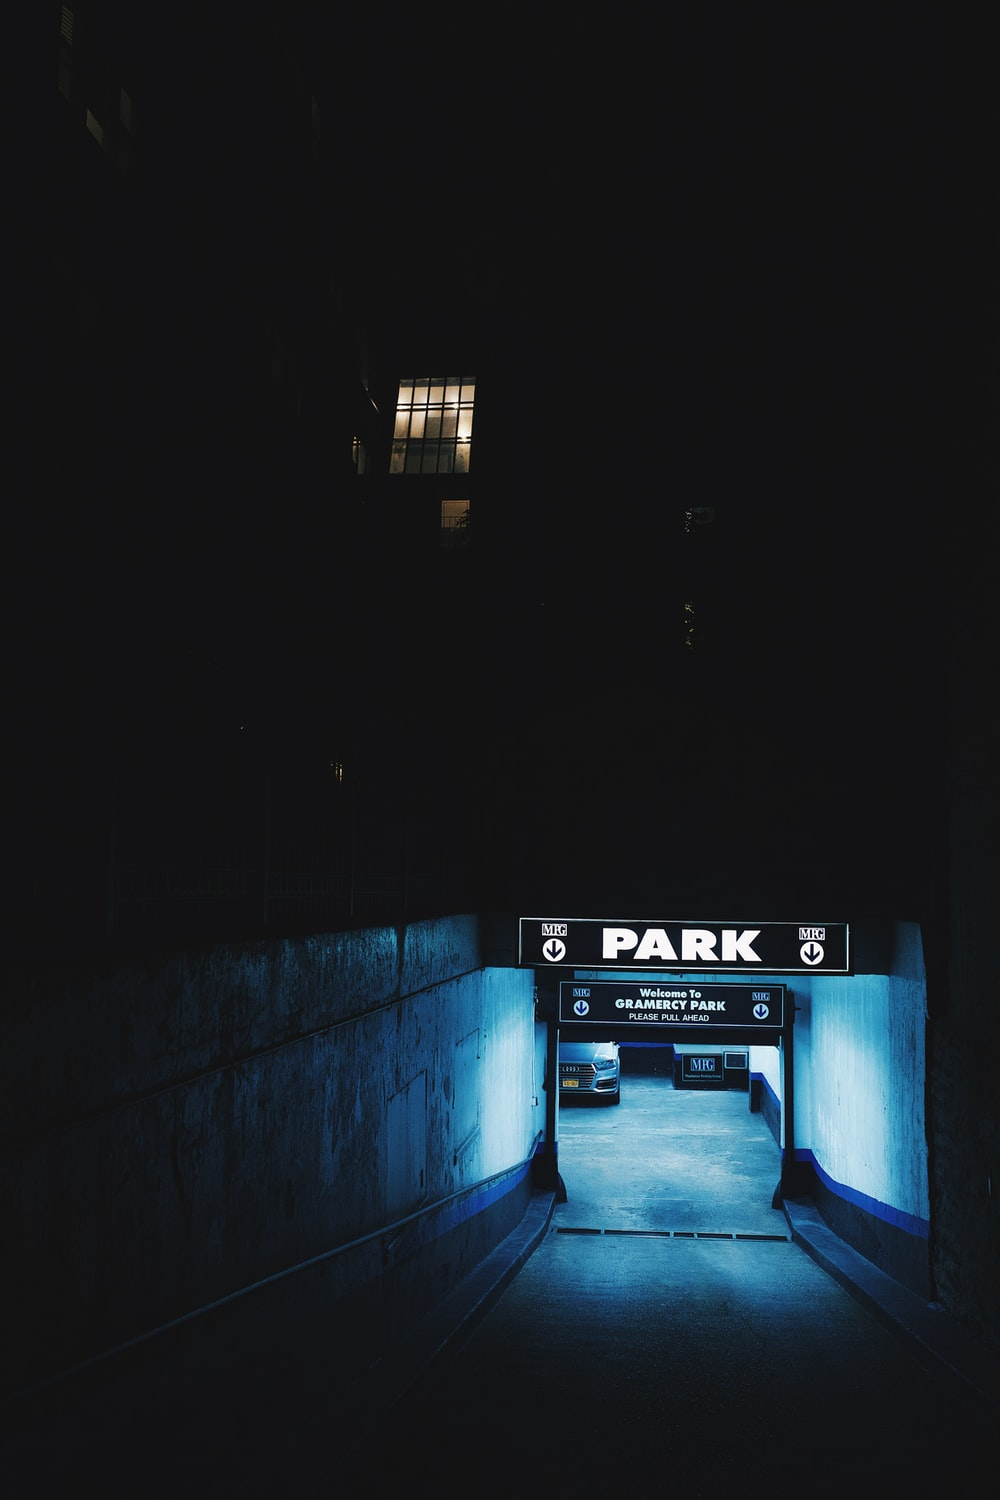 tunnel with park sign